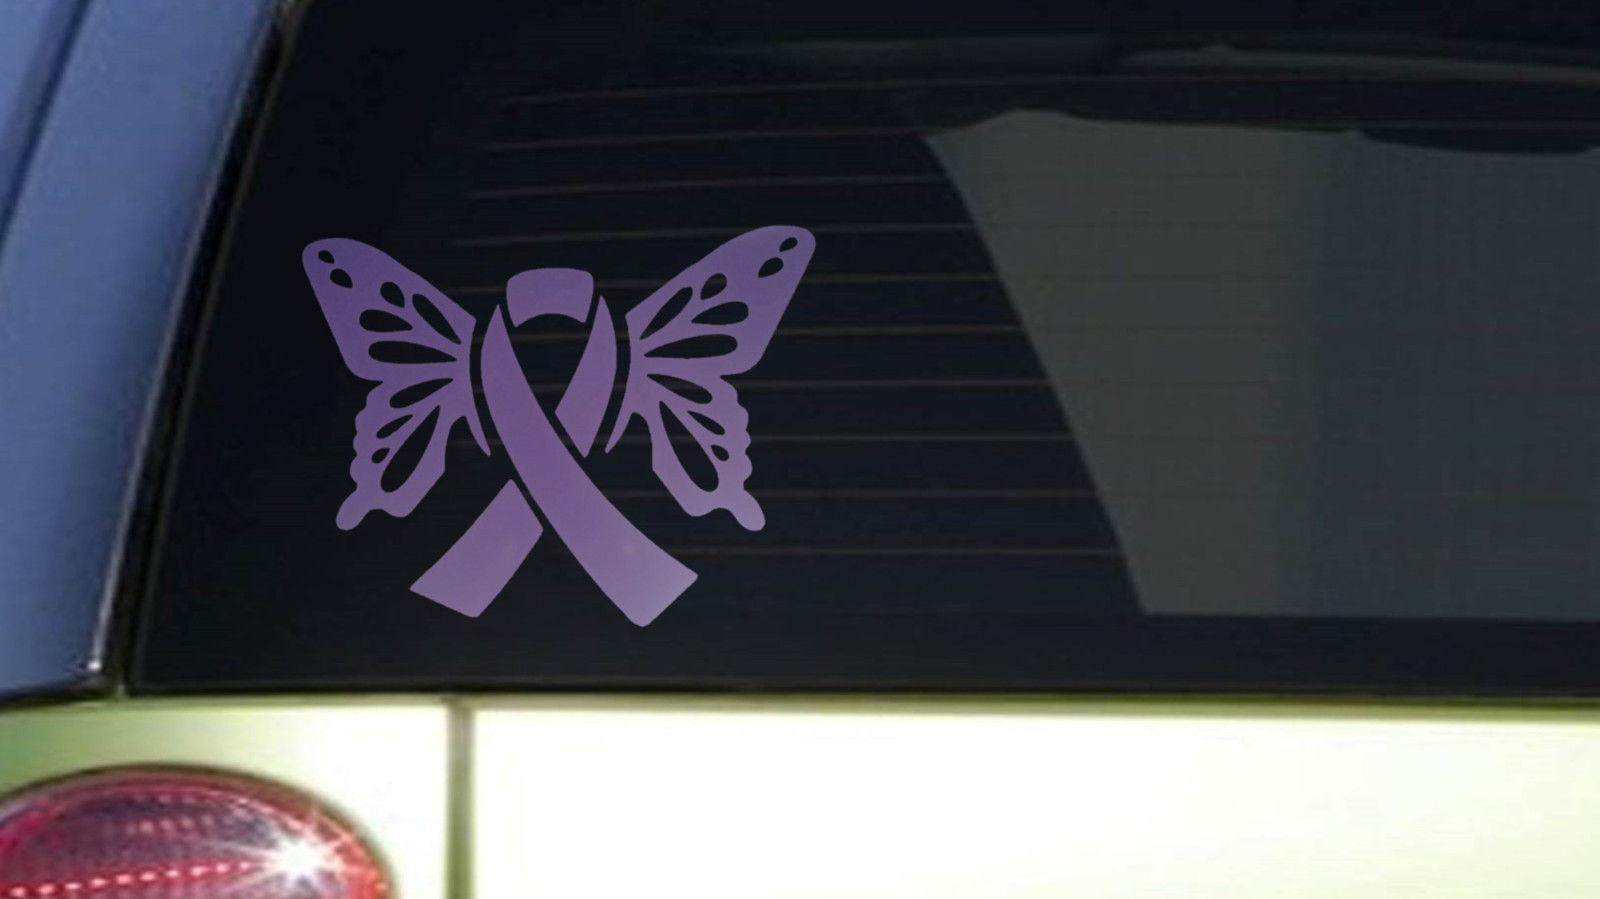 Primary image for Lupus Butterfly *I399* 6x8 inch Sticker decal purple awareness cure